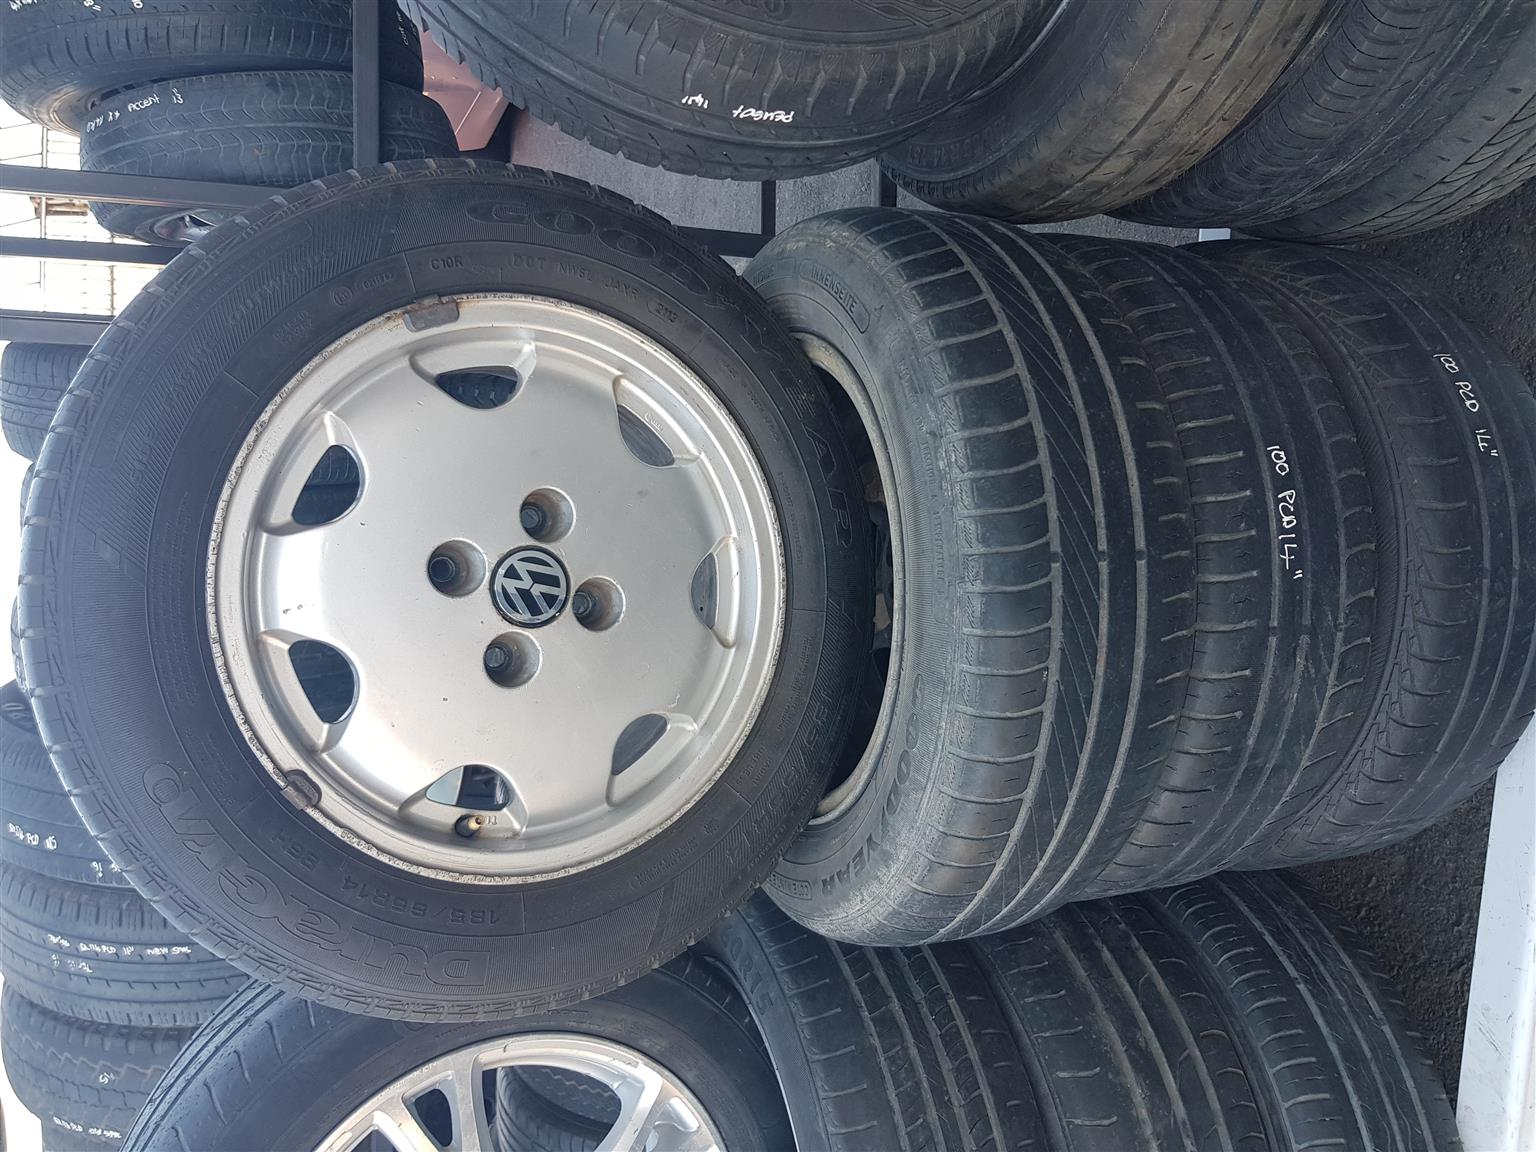 VW mag rims and tyres 100 PCD 14 inch for sale.